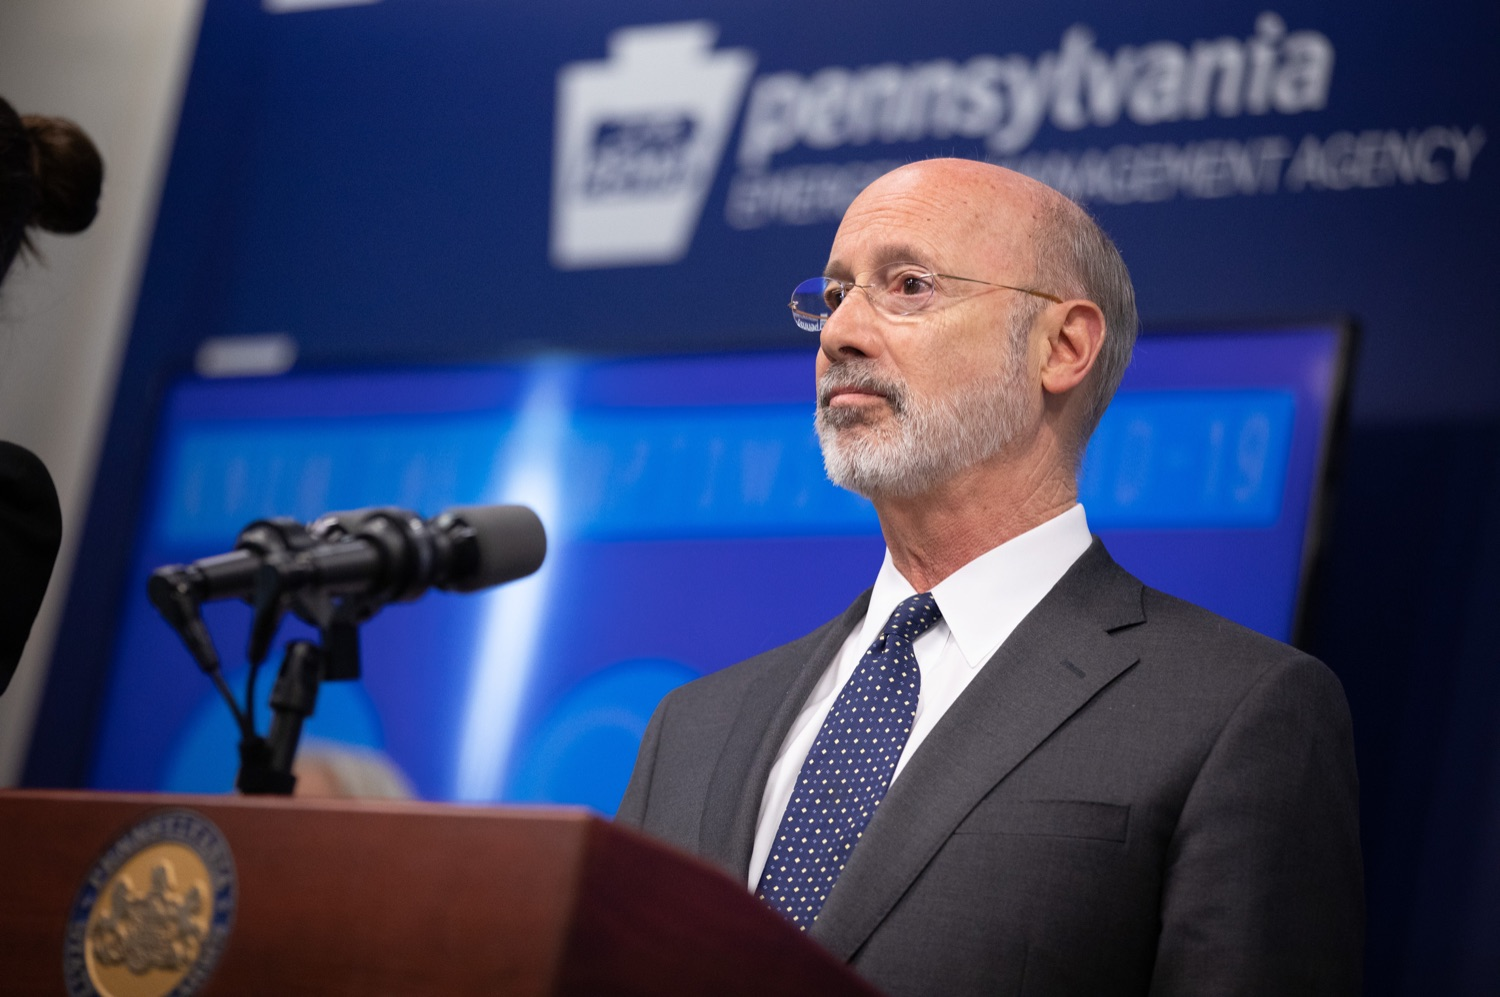 """<a href=""""https://filesource.wostreaming.net/commonwealthofpa/photo/17888_gov_covid19_update_dz_0013.jpg"""" target=""""_blank"""">⇣Download Photo<br></a>Governor Tom Wolf  speaking to reporters. Governor Tom Wolf and Secretary of Health Dr. Rachel Levine provided an update on the coronavirus known as COVID-19 and outline ongoing efforts to mitigate the virus in Pennsylvania. The Department of Health anticipates that there will be more Pennsylvanians who test positive for COVID-19 in the coming days and weeks and it is important for residents to know the commonwealth is prepared and to be prepared themselves. People have a higher chance of testing positive for COVID-19 if they have traveled to a country or state with known community outbreaks or have come in contact with someone who has the virus. The Wolf Administration is working with the health care community across Pennsylvania to keep them informed, consult on patient testing, and ensure they have the resources they need to care for patients. .March 16, 2020  Harrisburg Pa."""